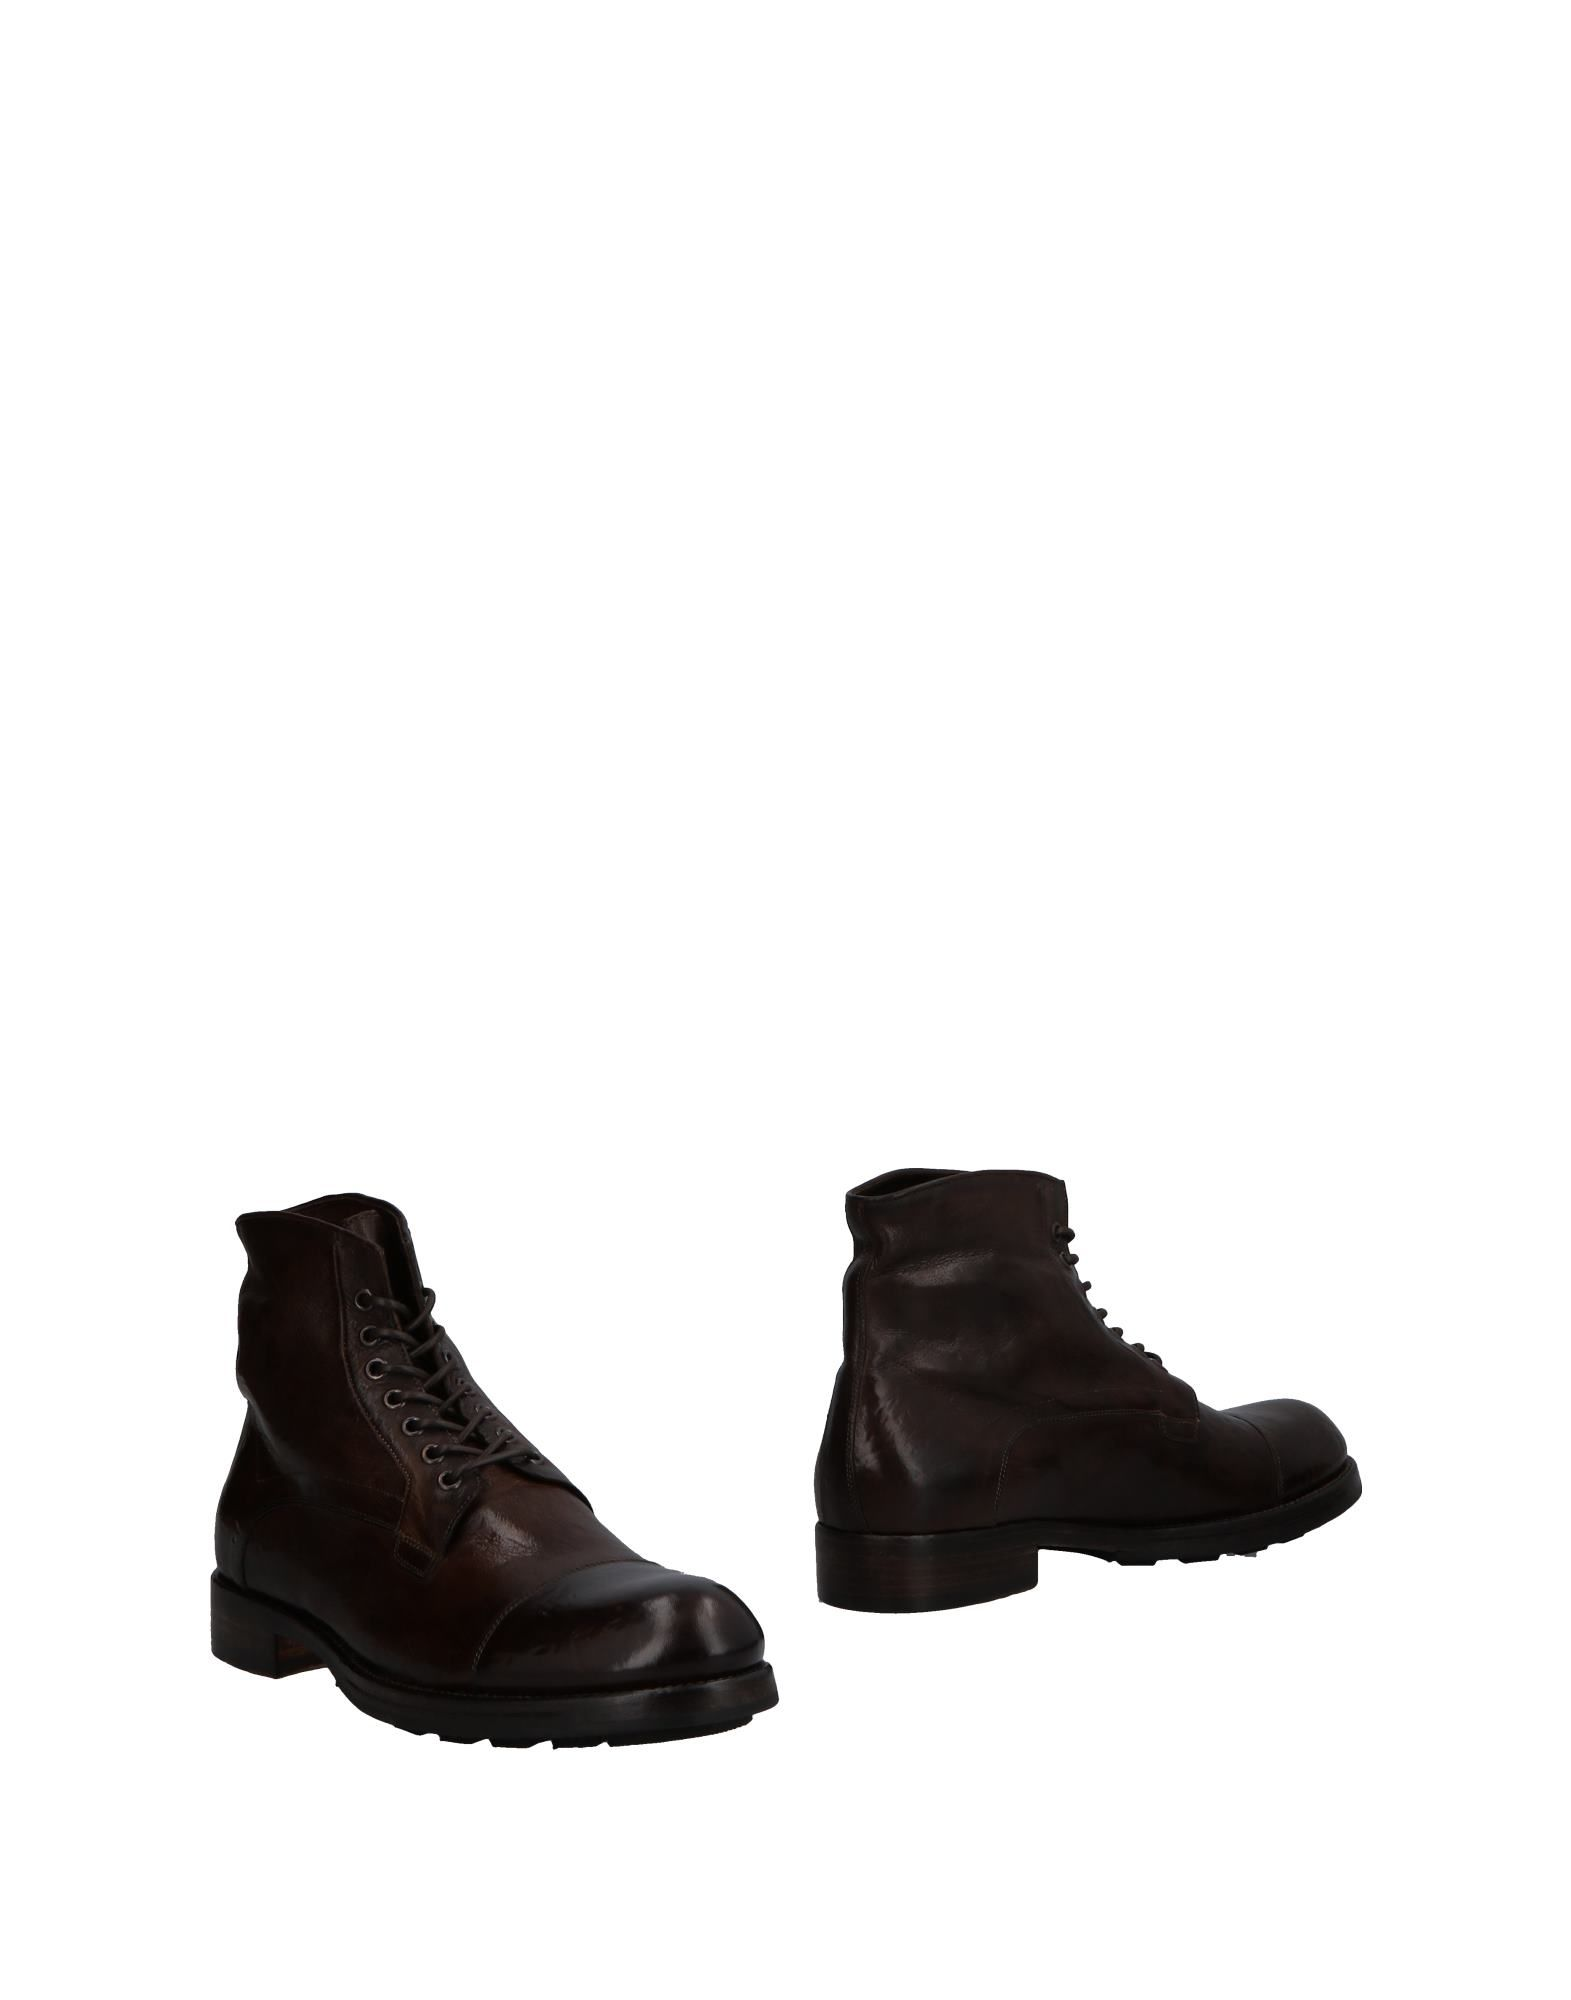 Corvari Boots Boots Boots - Men Corvari Boots online on  Canada - 11495944XK cff461